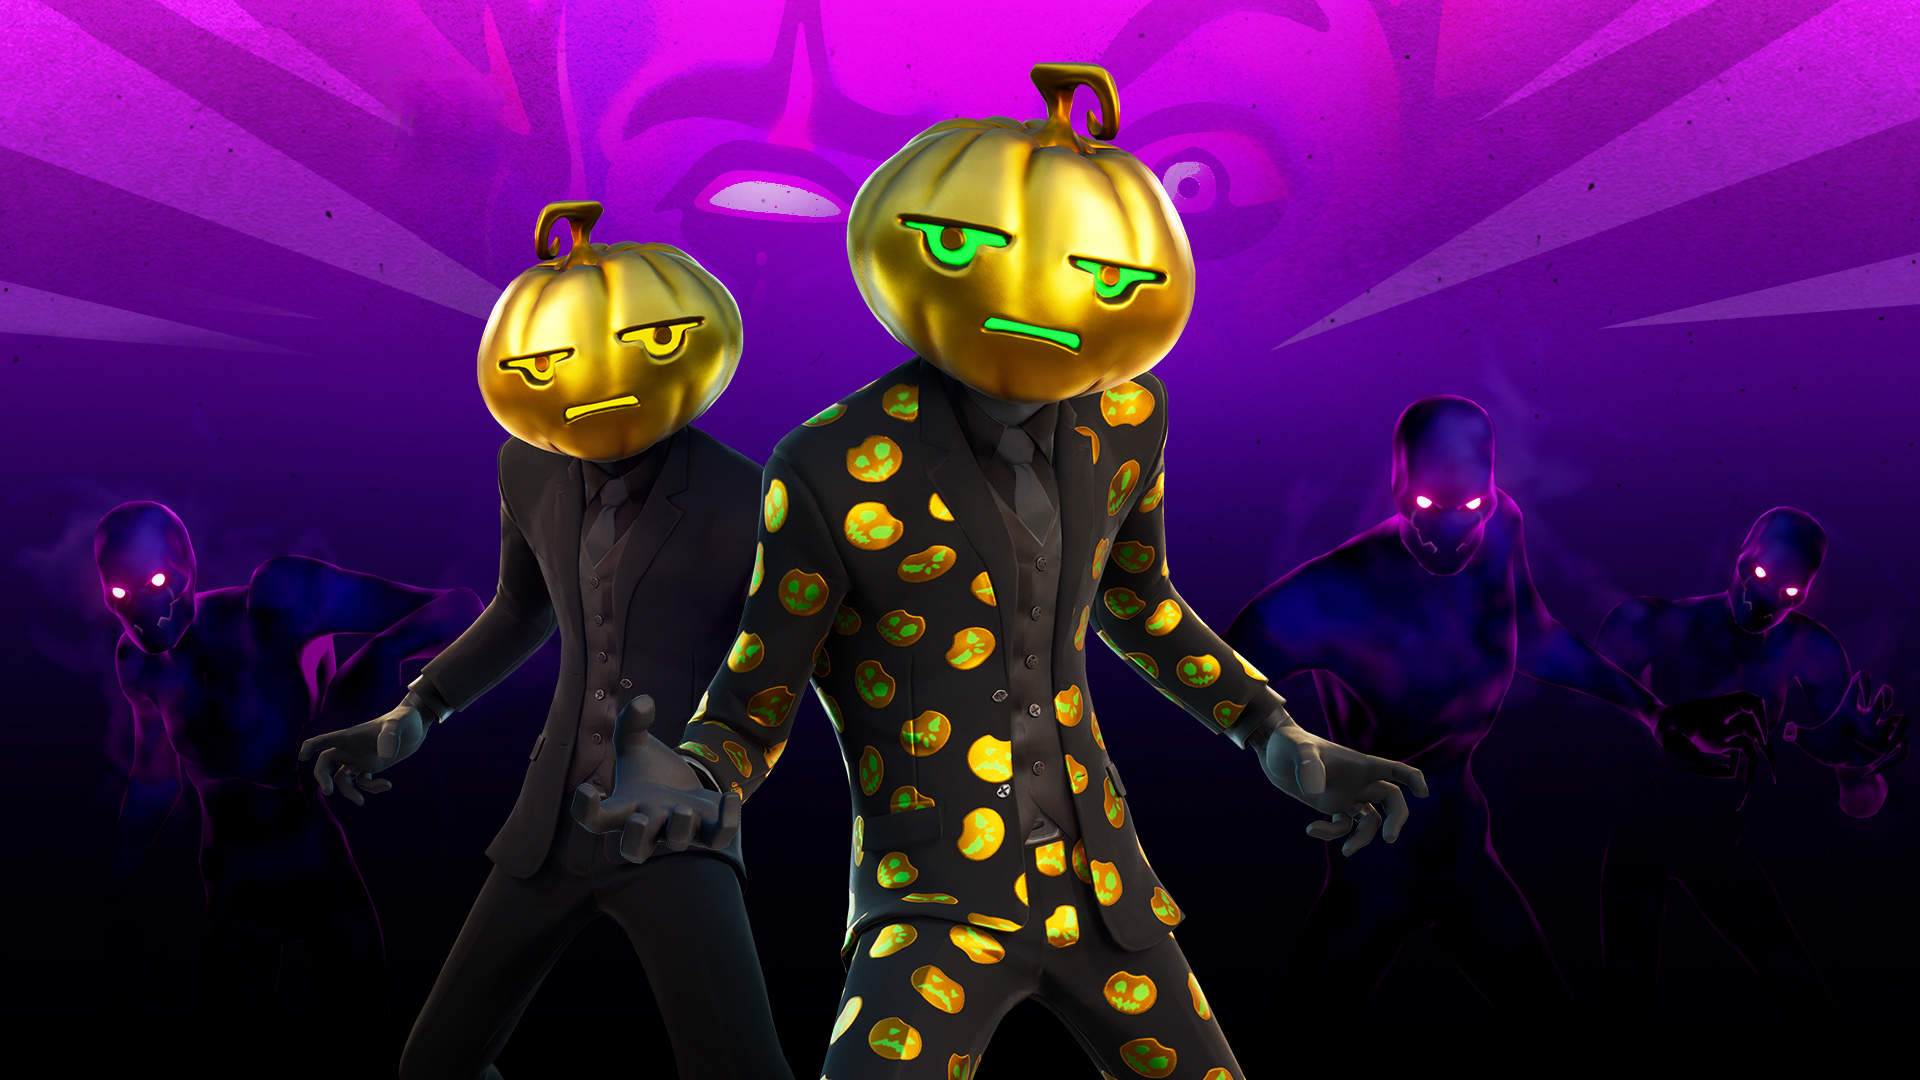 Jack Gourdon Outfit Fortnite Halloween Wallpaper Hd Games 4k Wallpapers Images Photos And Background